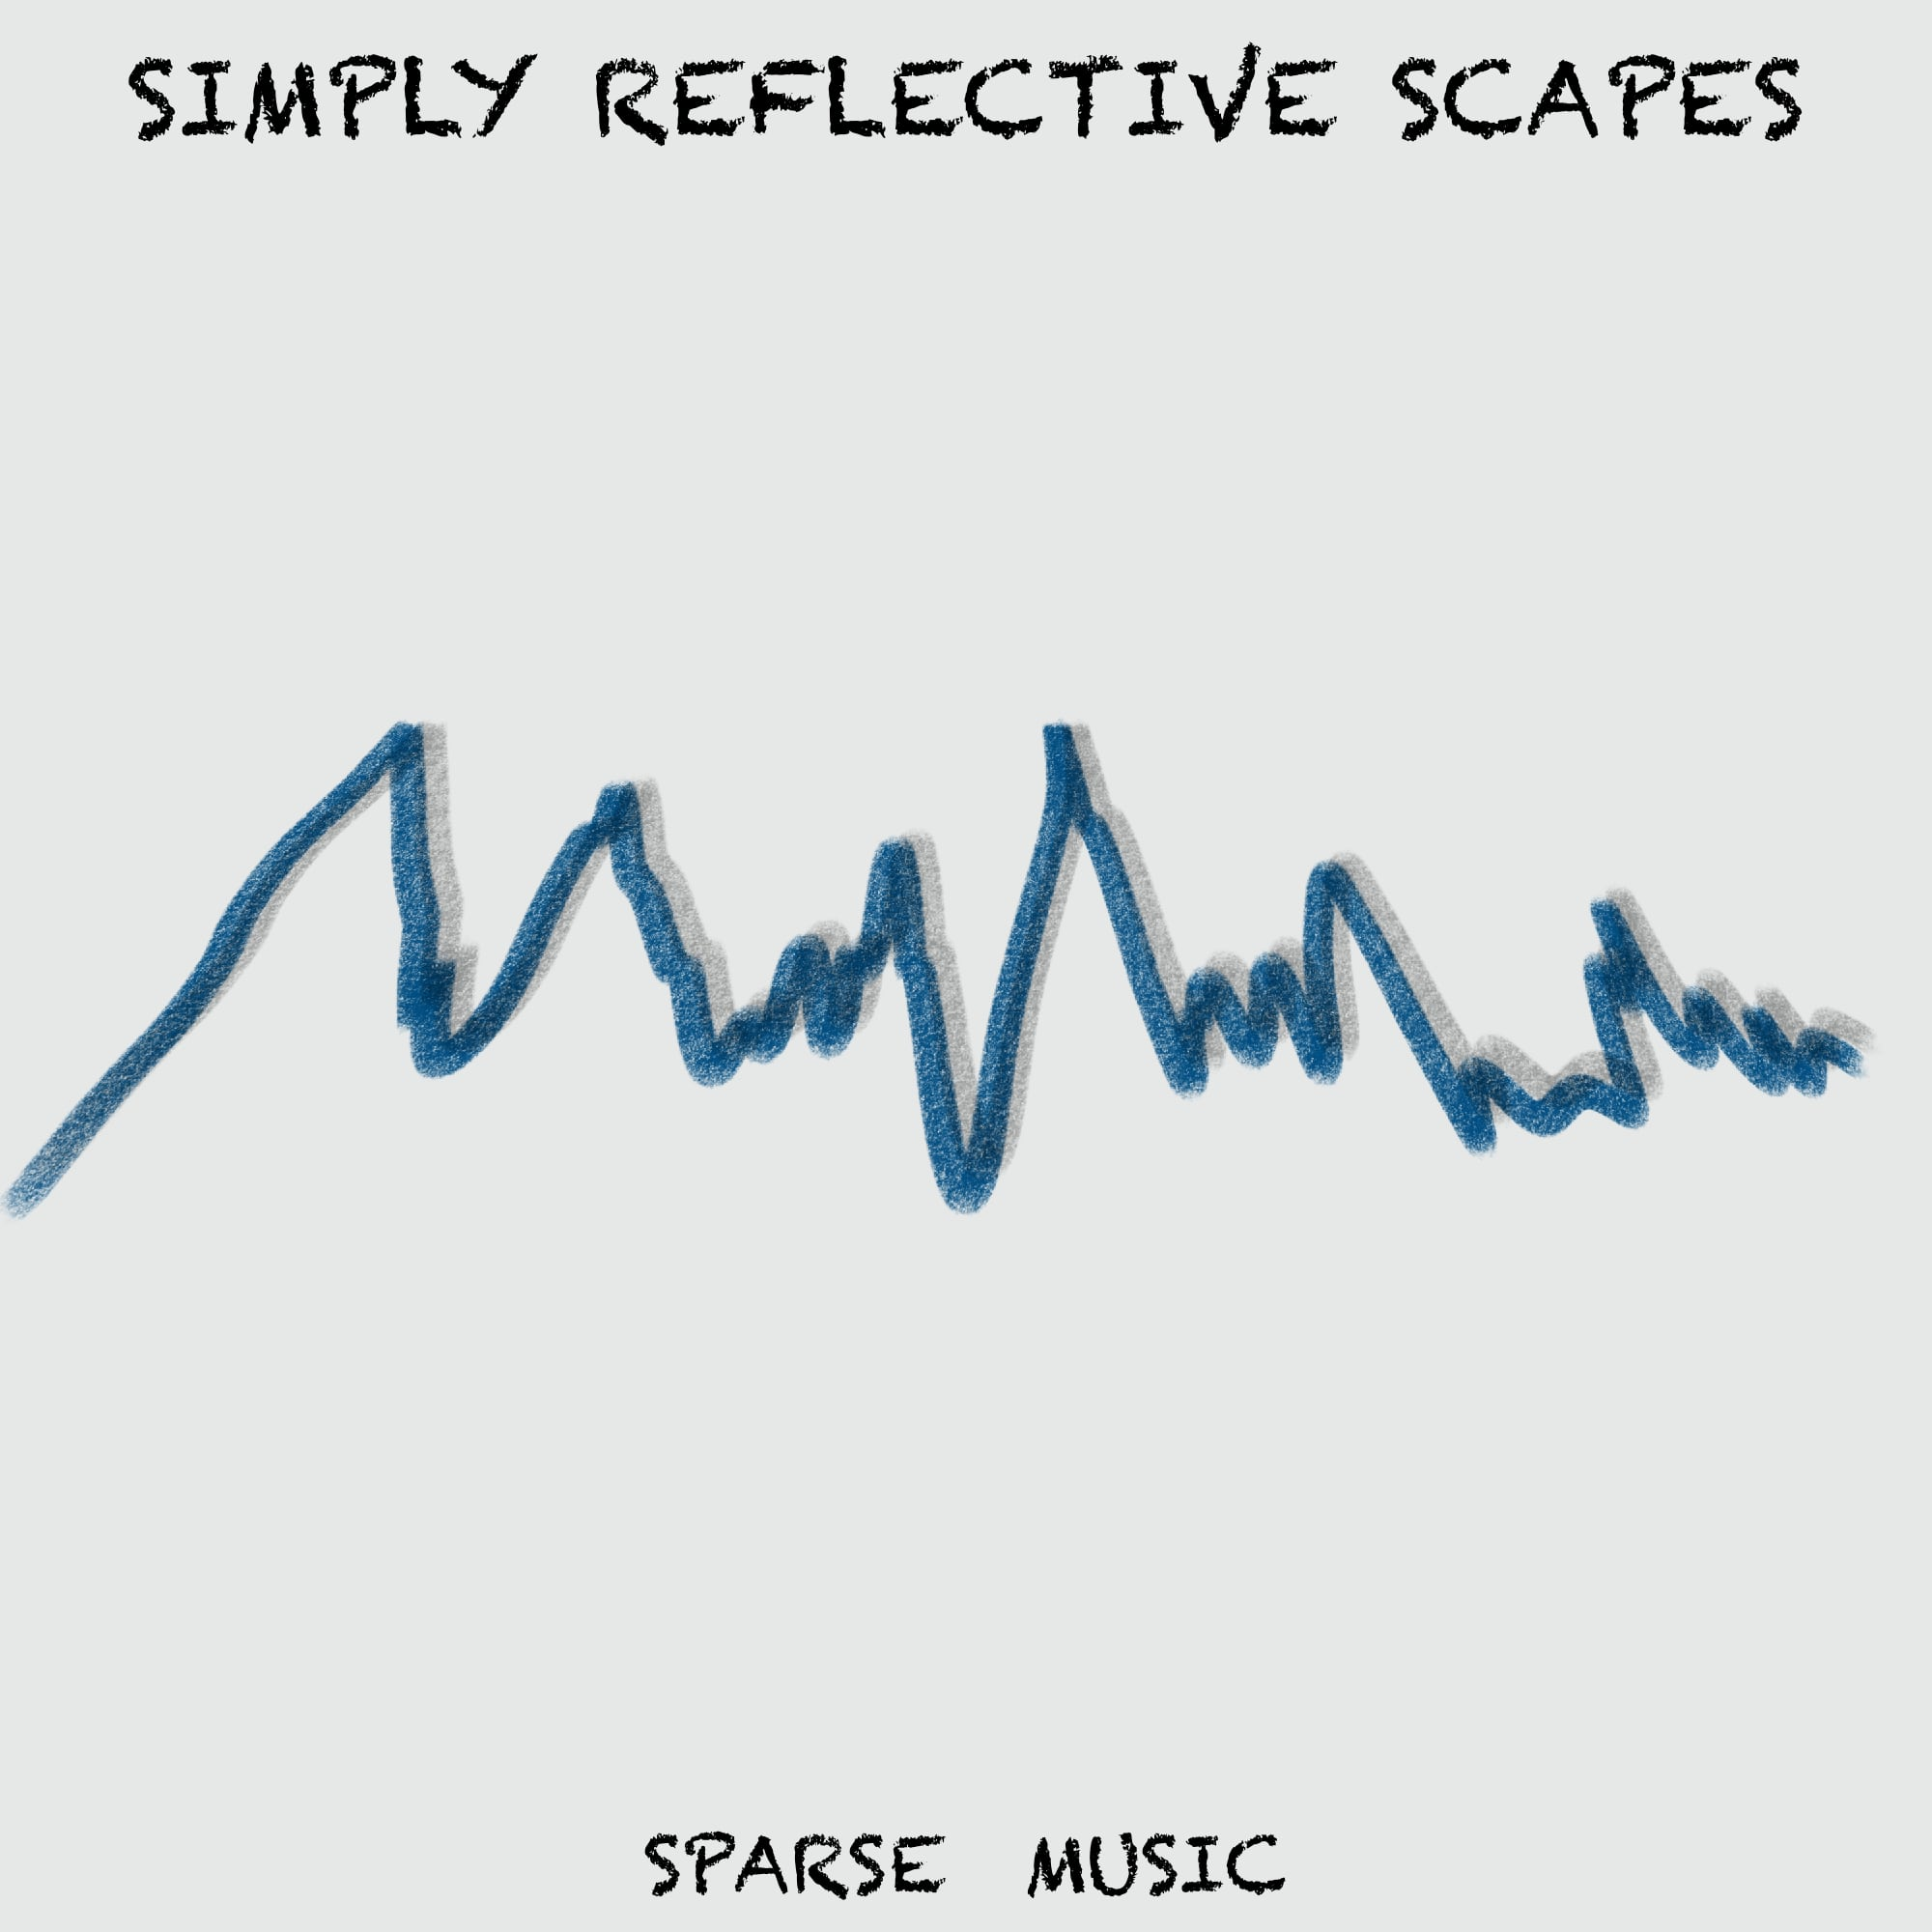 SPRS 01075 Simply Reflective Scapes 2000